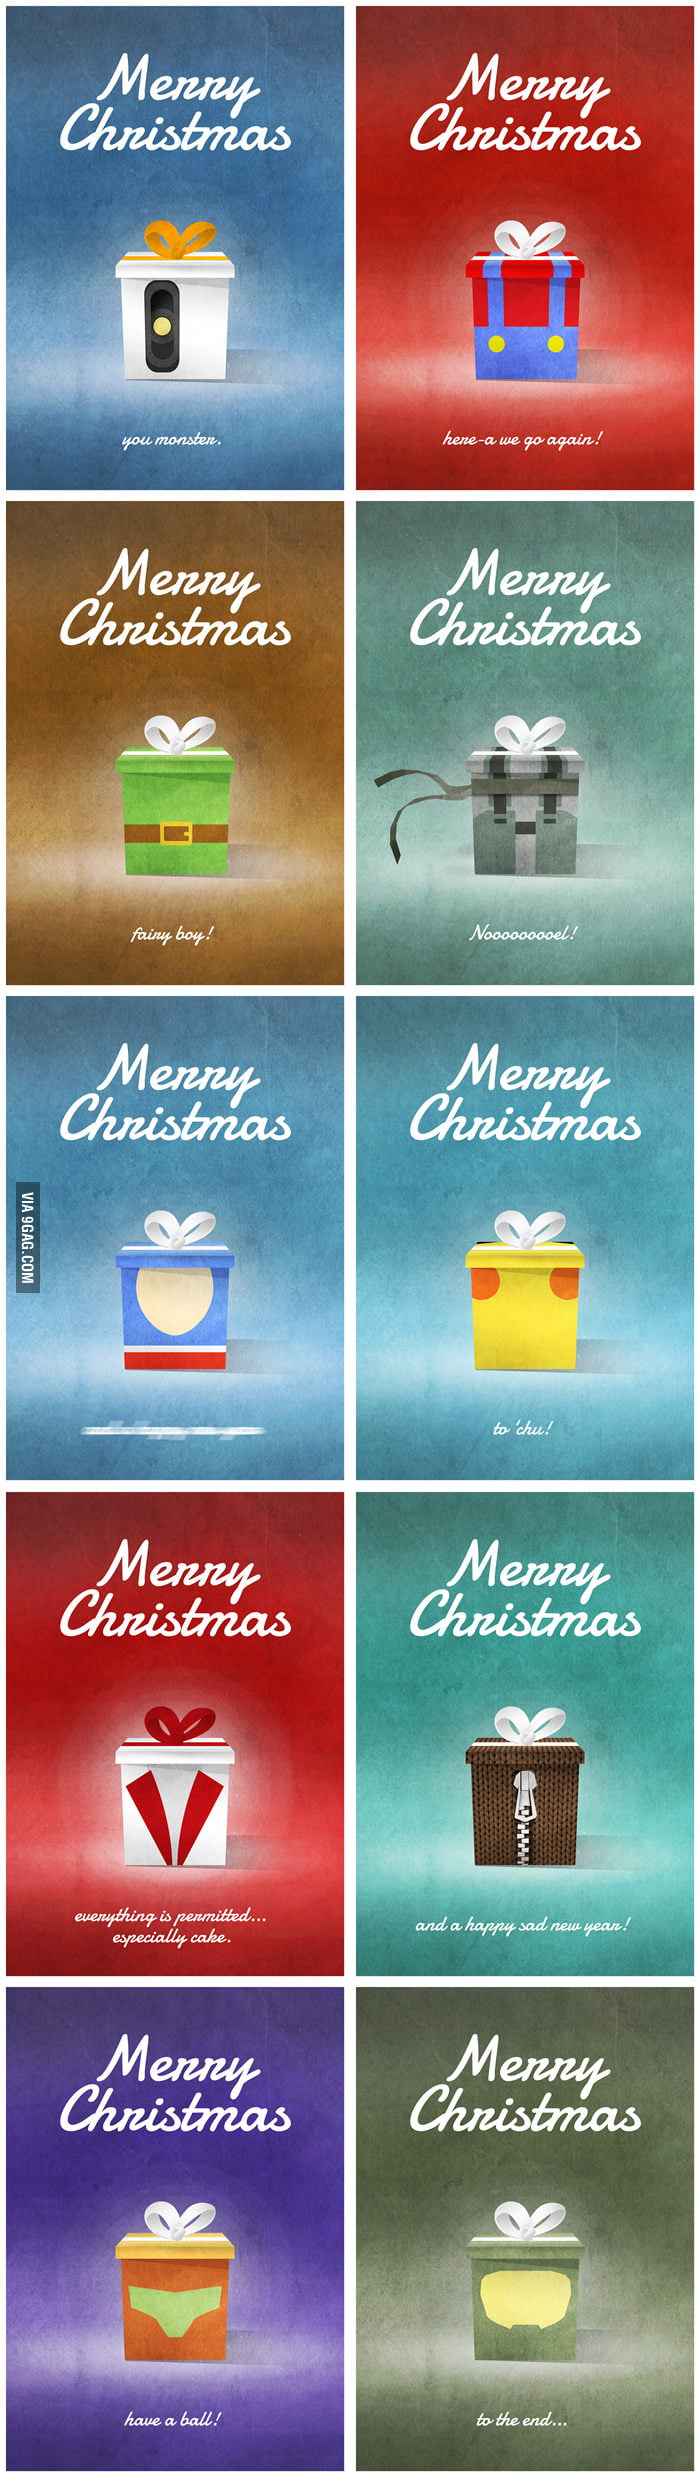 Video Games Christmas Cards